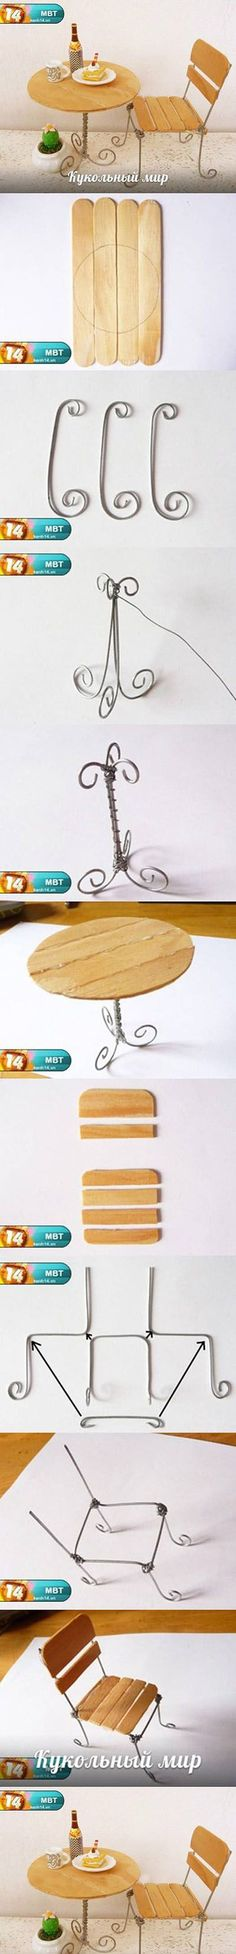 Diy Mini Chair | DIY & Crafts Tutorials - would be great for a doll house or even a fairy house ;).